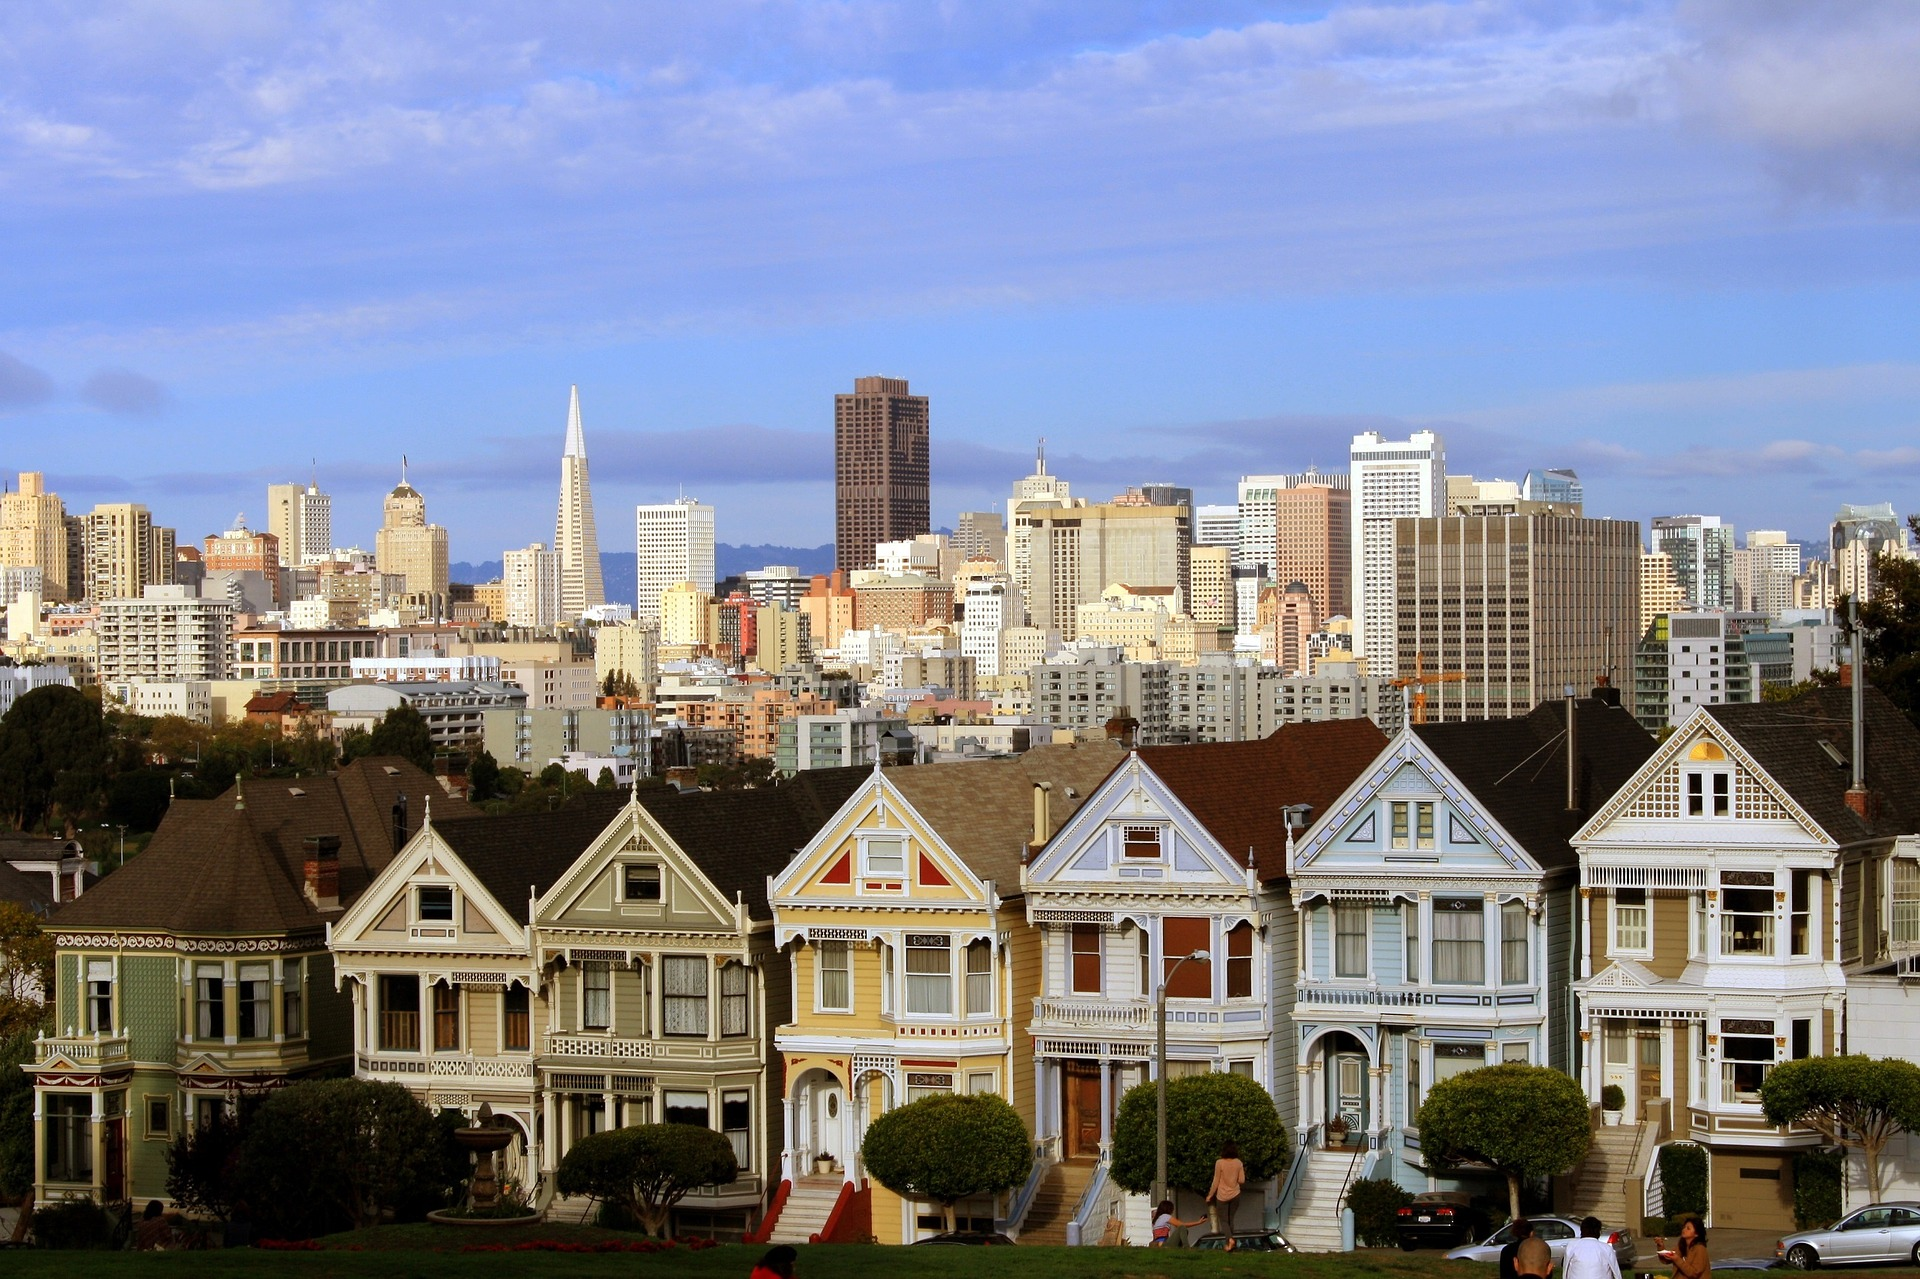 San Francisco Explorer | Alamo Square, San Francisco, California, USA